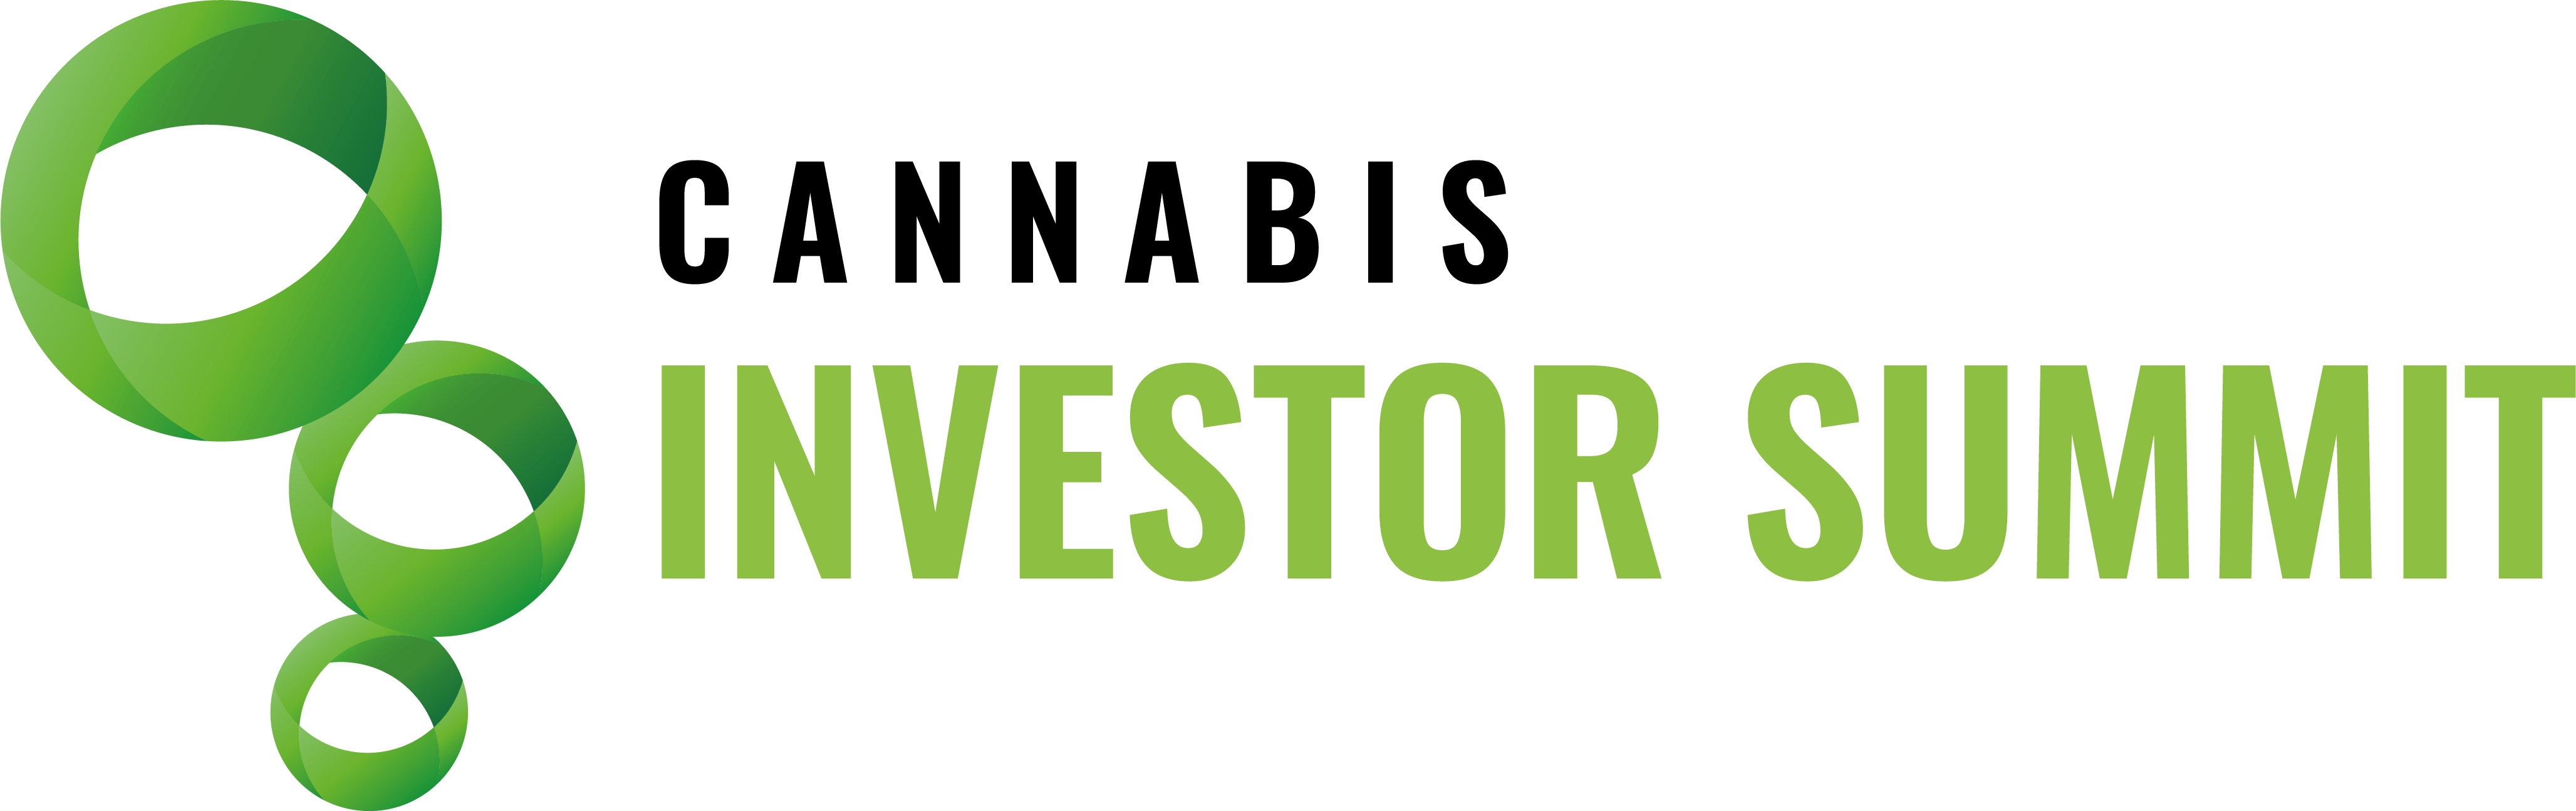 Cannabis investor summit